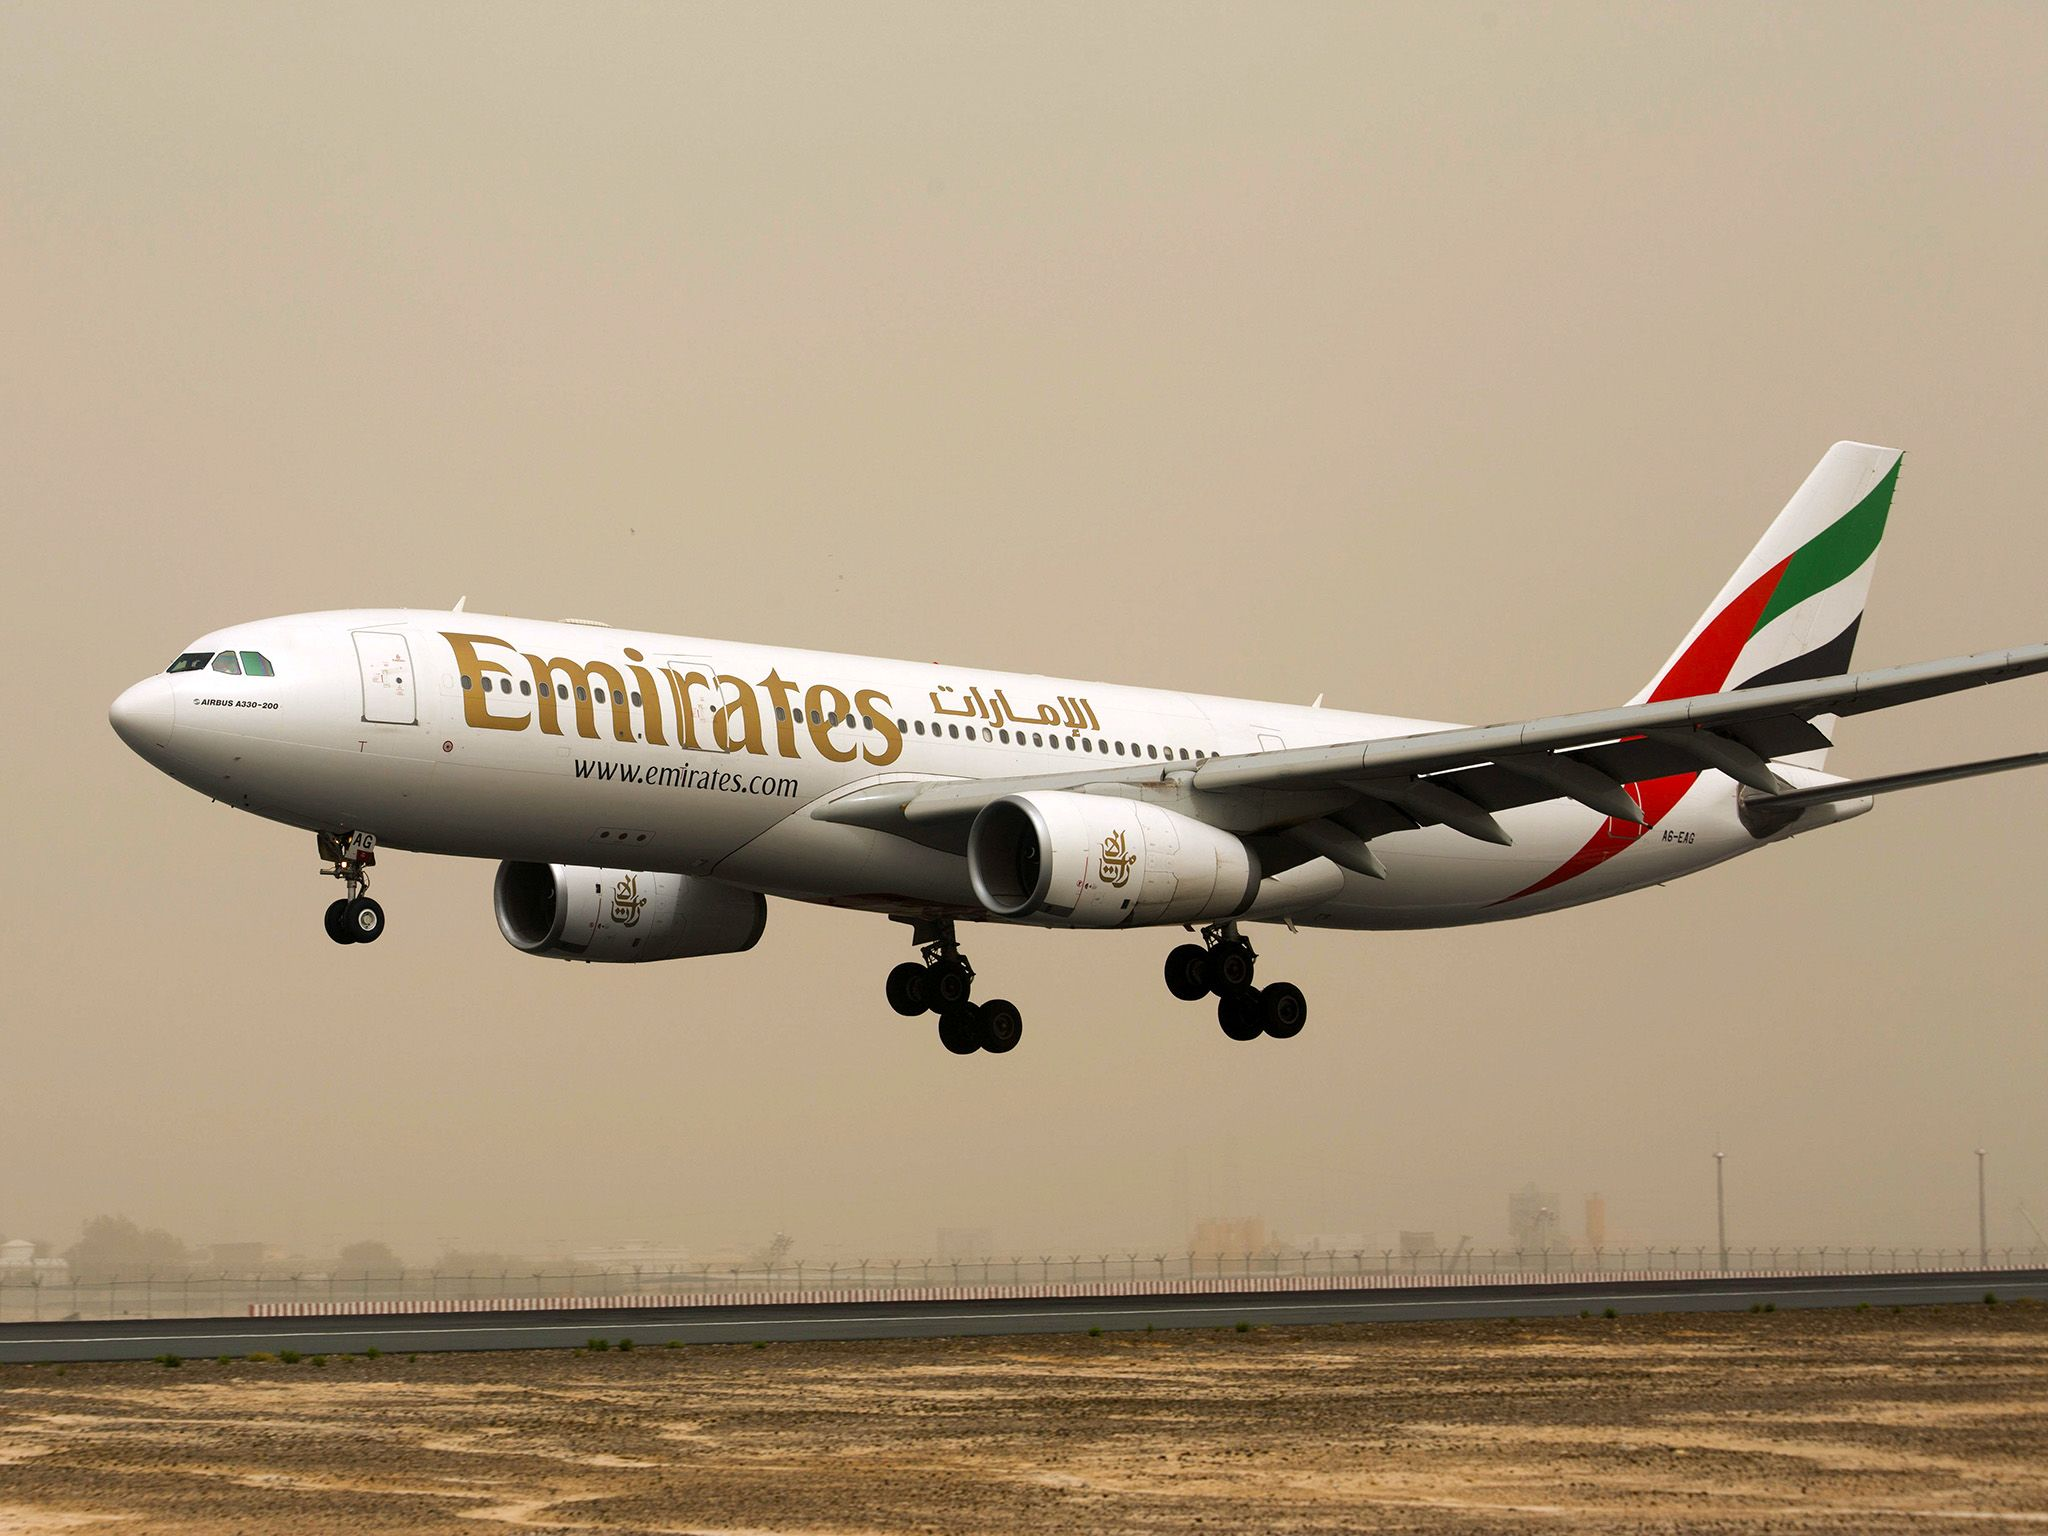 Dubai: Emirates aircraft at take off. This image is from Ultimate Airport Dubai. [Photo of the day - October 2015]